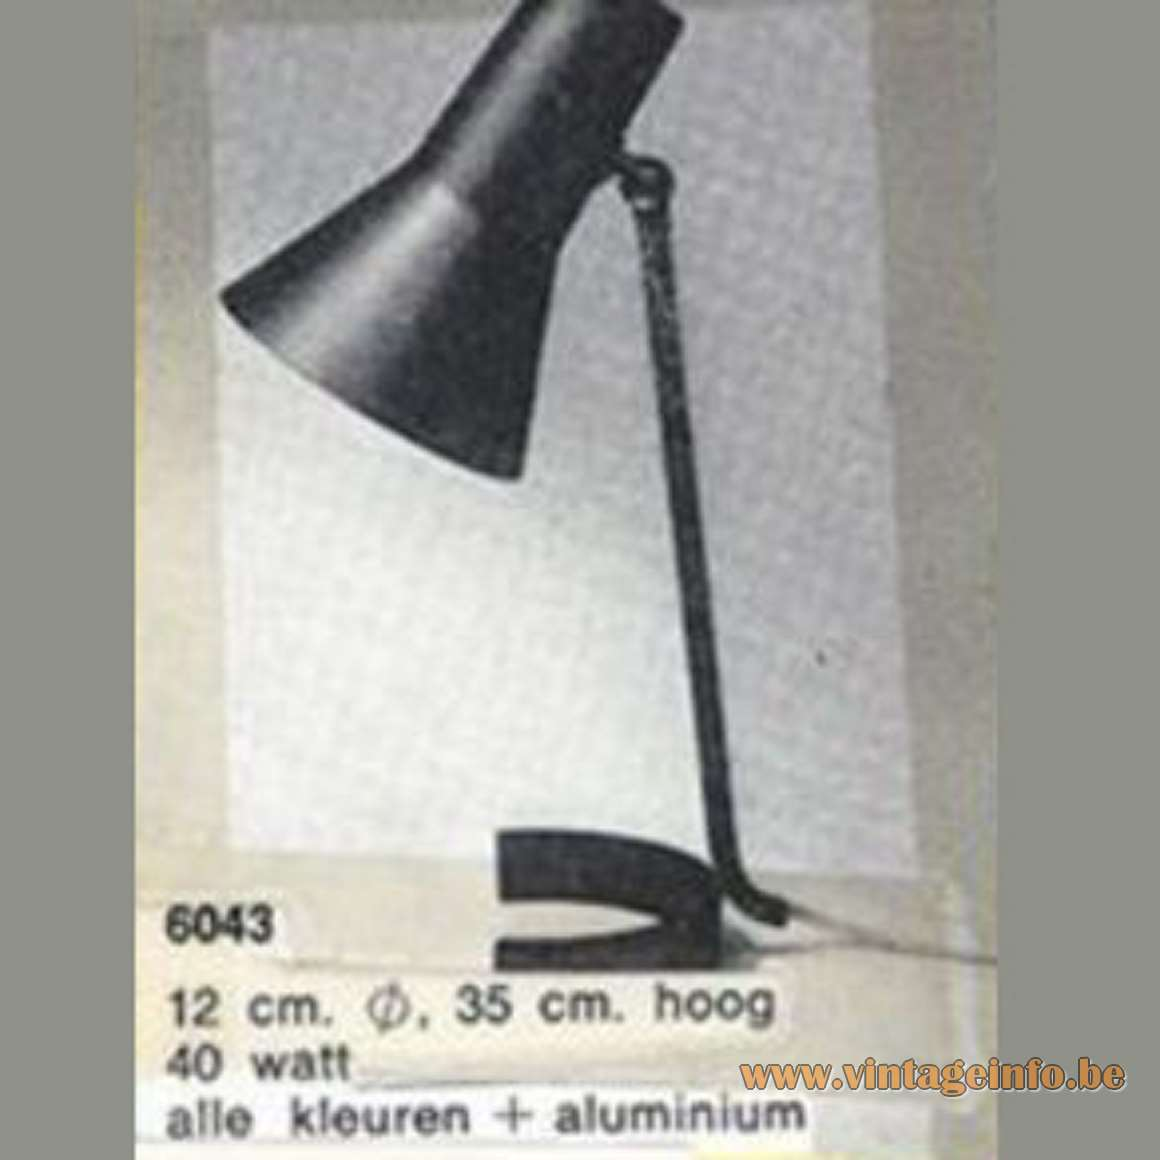 Bureaulamp Anvia Anvia Horseshoe Desk Lamp 6043 Vintage Info All About